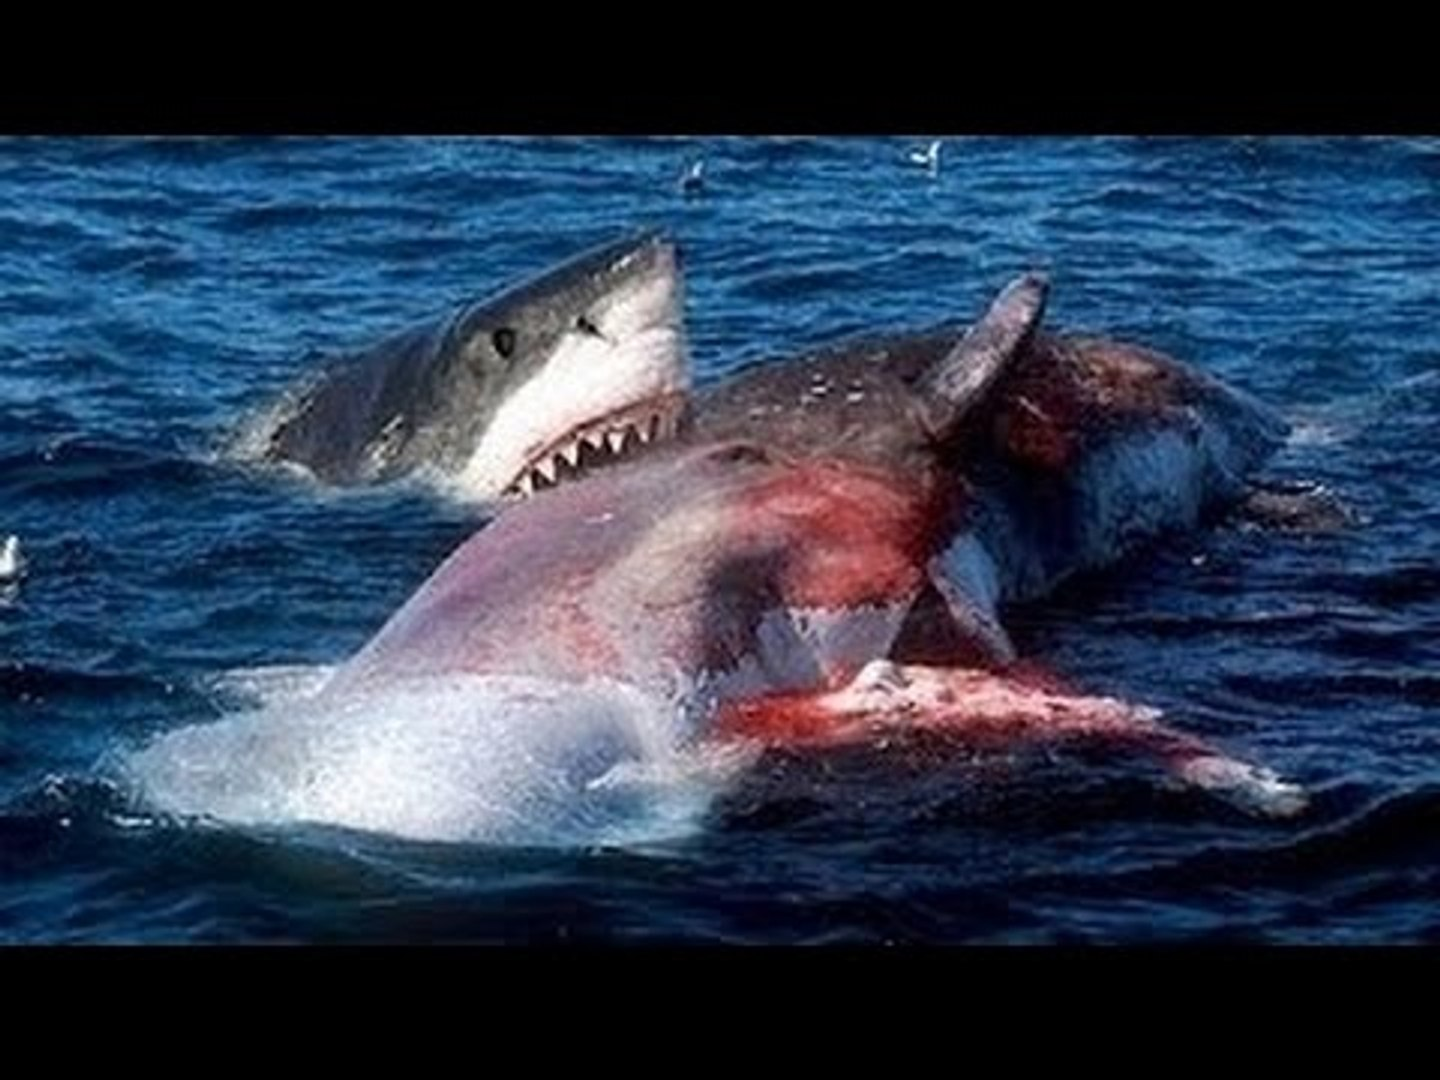 Killer Whale Vs Great White - Orca Kills Shark and Wins Fight [Nature Documentary]